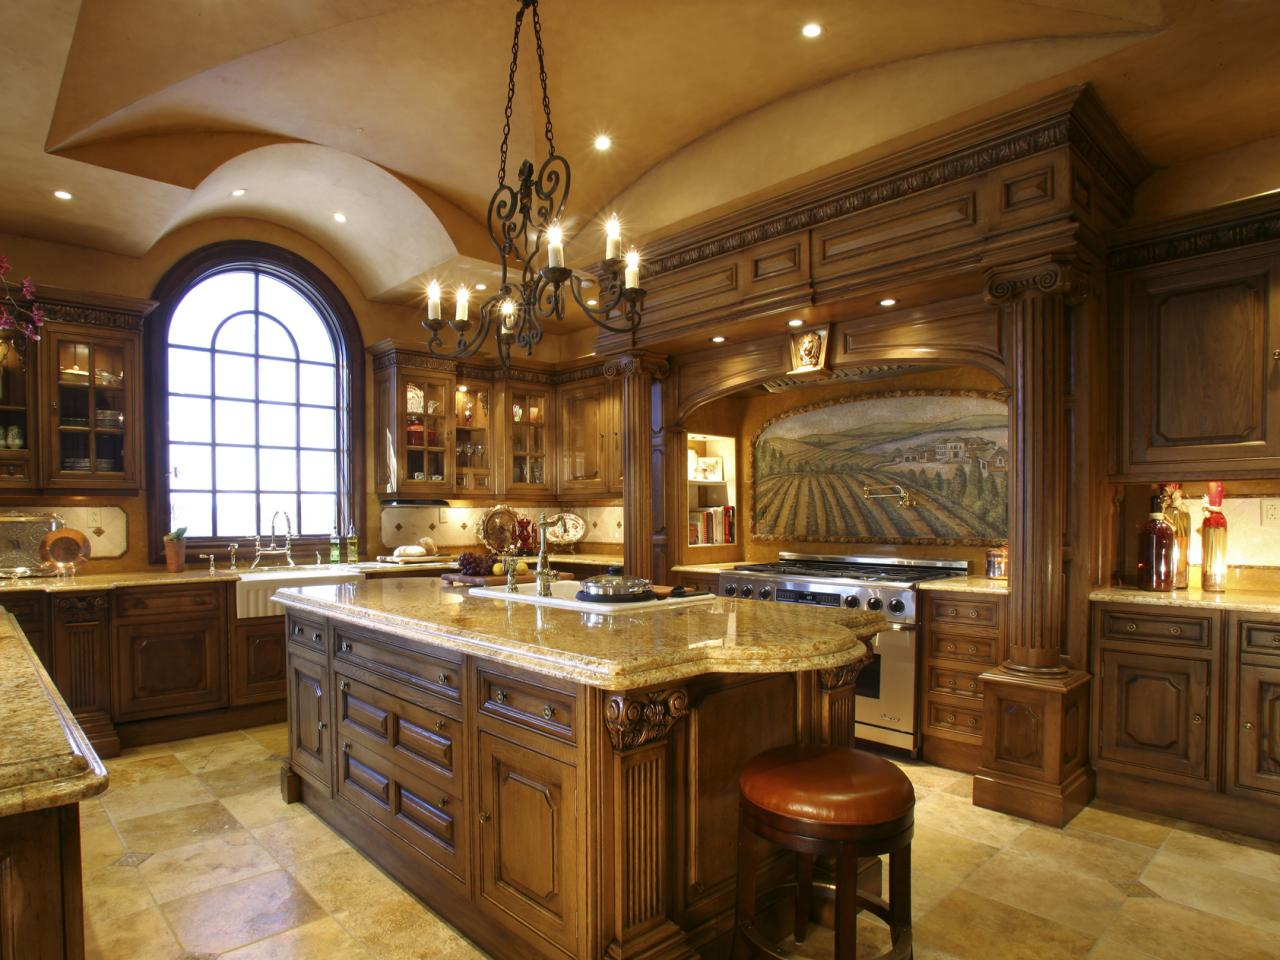 16 Magnificent Kitchen Designs In Traditional Style on Traditional Kitchen Decor  id=49625